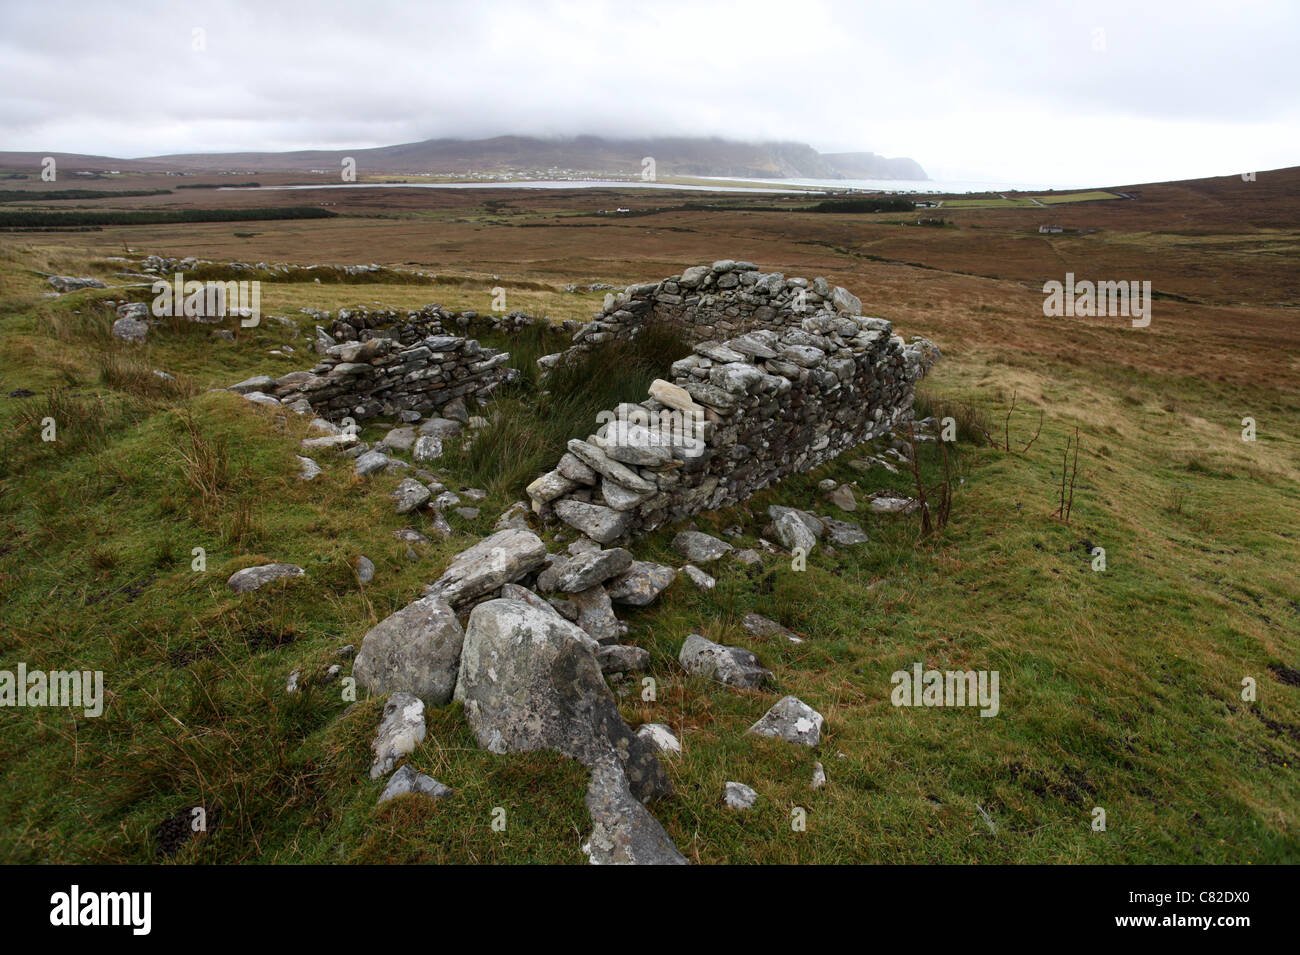 The Deserted Village of Slievemore on Achill Island in County Mayo - Stock Image